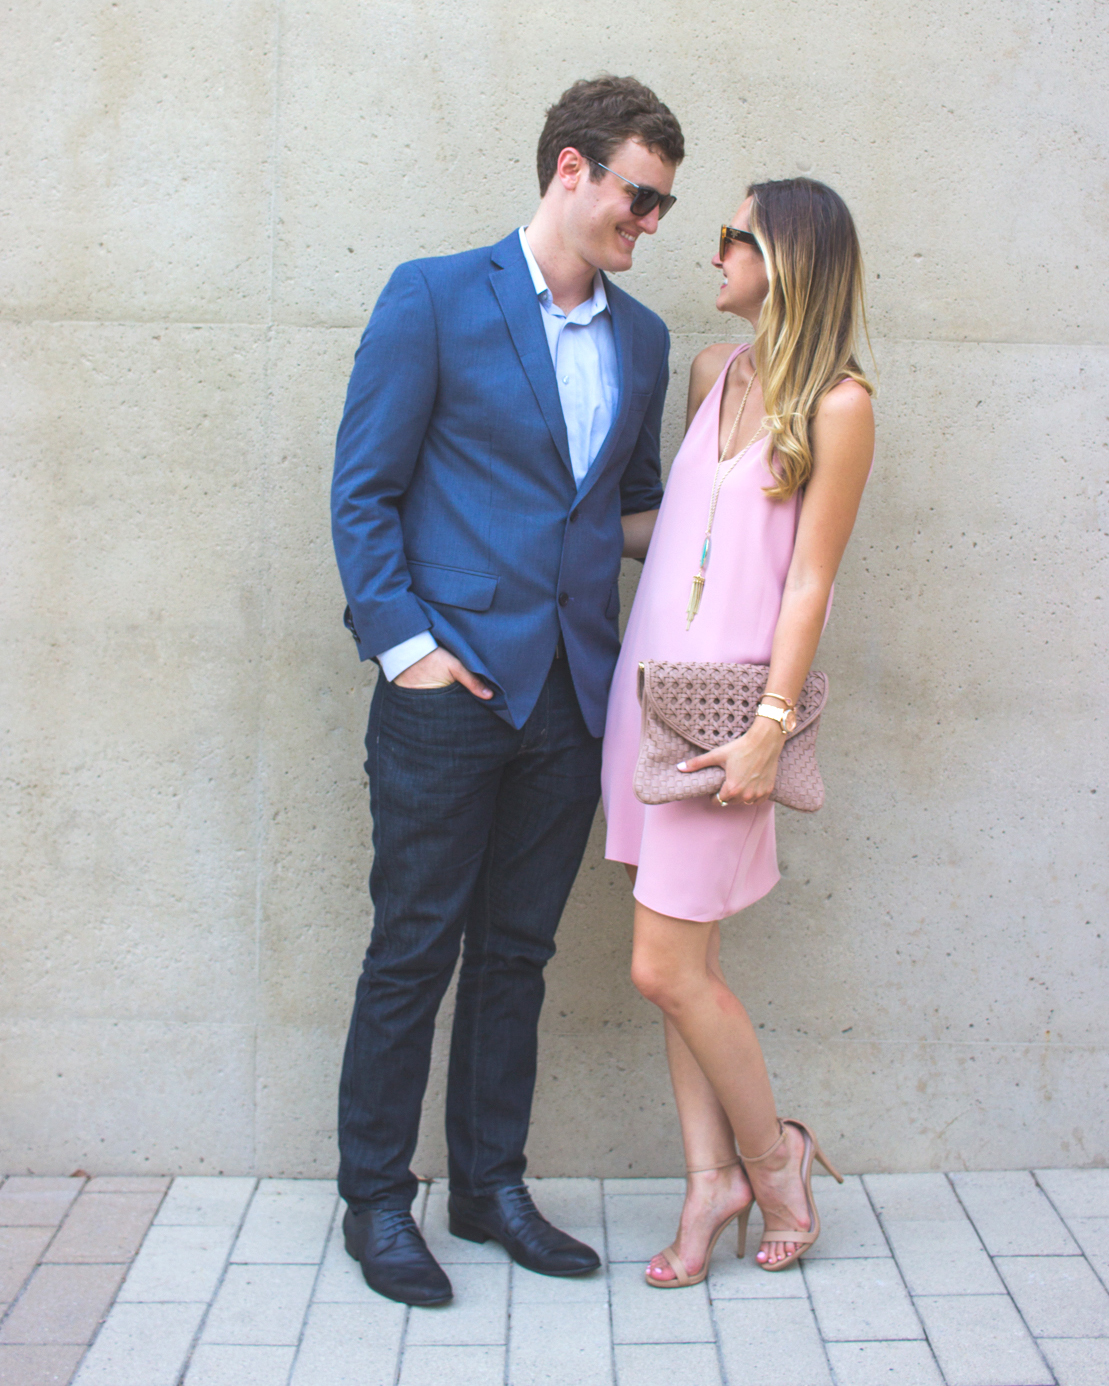 livvyland-blog-olivia-watson-date-night-summer-austin-texas-outfit-inspiration-topshop-blush-pink-slip-dress-nordstrom-mens-suit-fashion-blogger-2